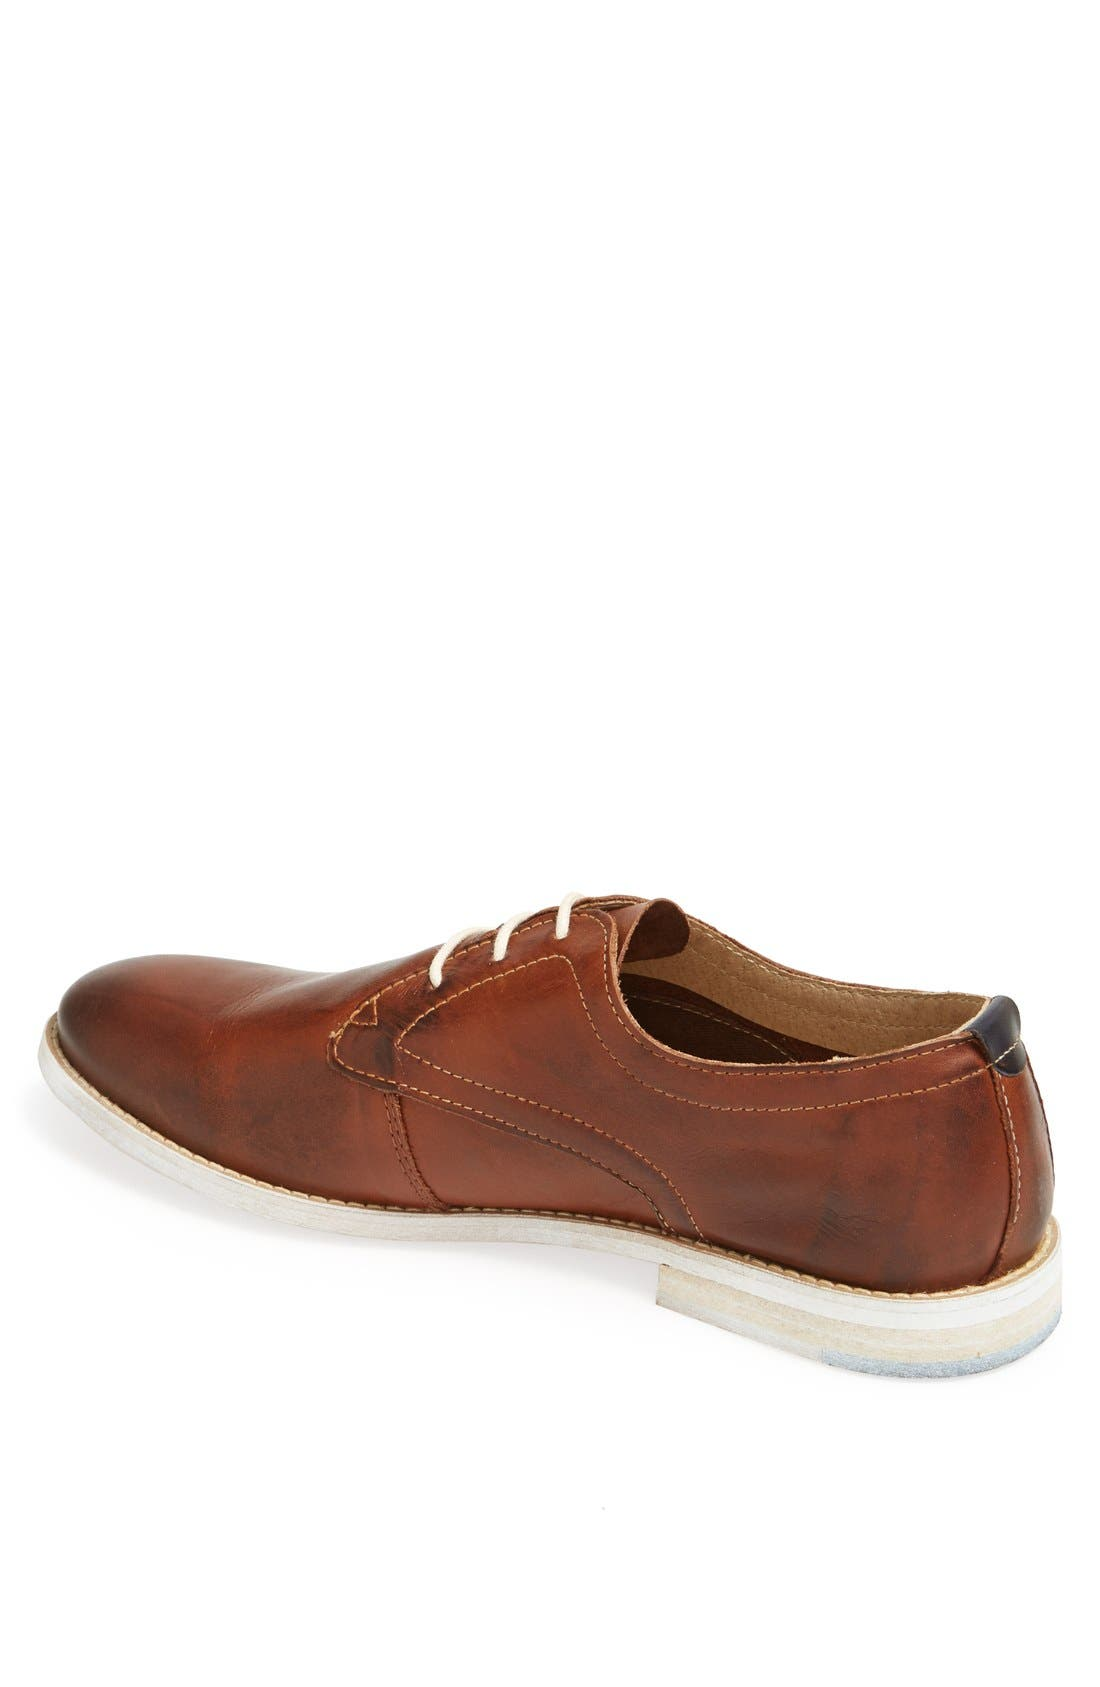 Alternate Image 2  - ALDO 'Bovell' Plain Toe Derby (Men)